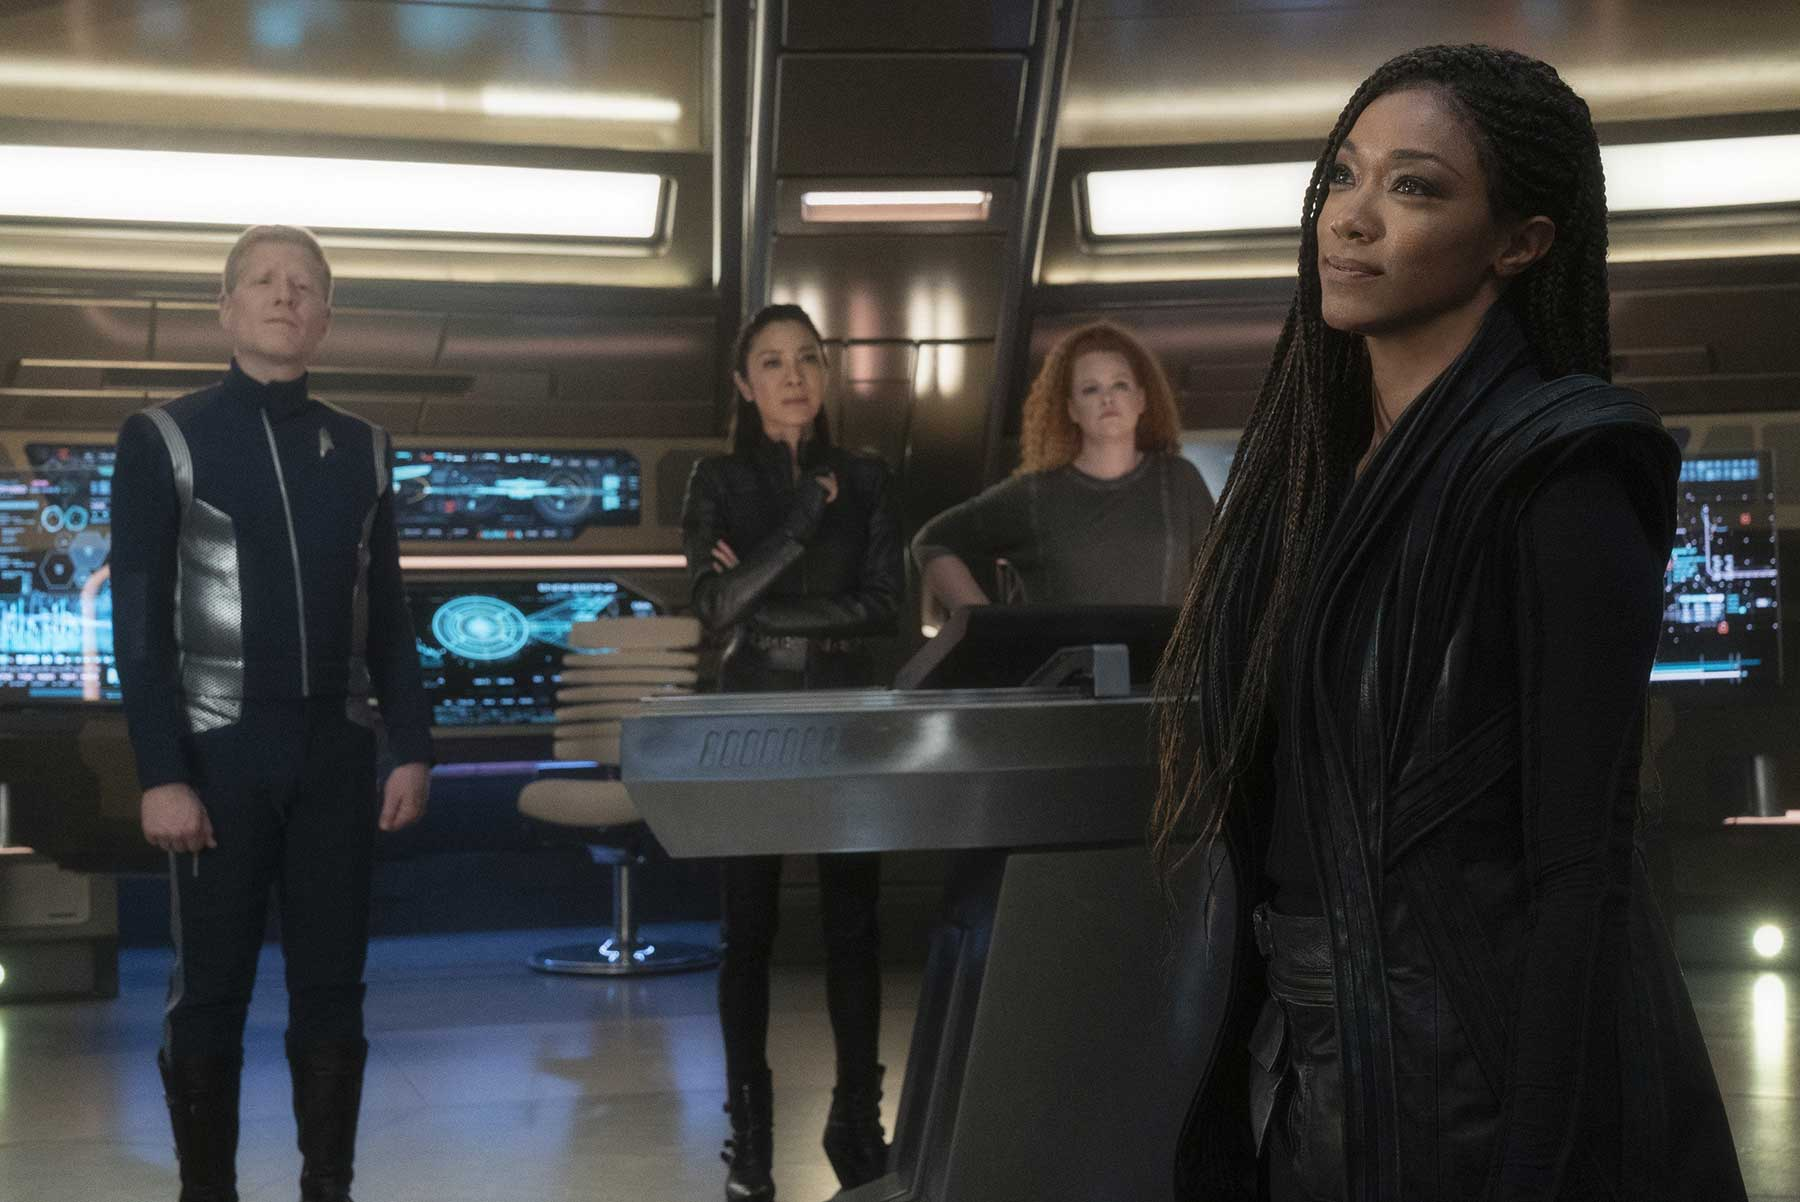 """Tilly (Mary Wiseman), Georgiou (Michelle Yeoh), and Stamets (Anthony Rapp) look at Michael Burnham (Sonequa Martin-Green), after reuniting with her in Star Trek Discovery Season 3's """"People of Earth"""""""